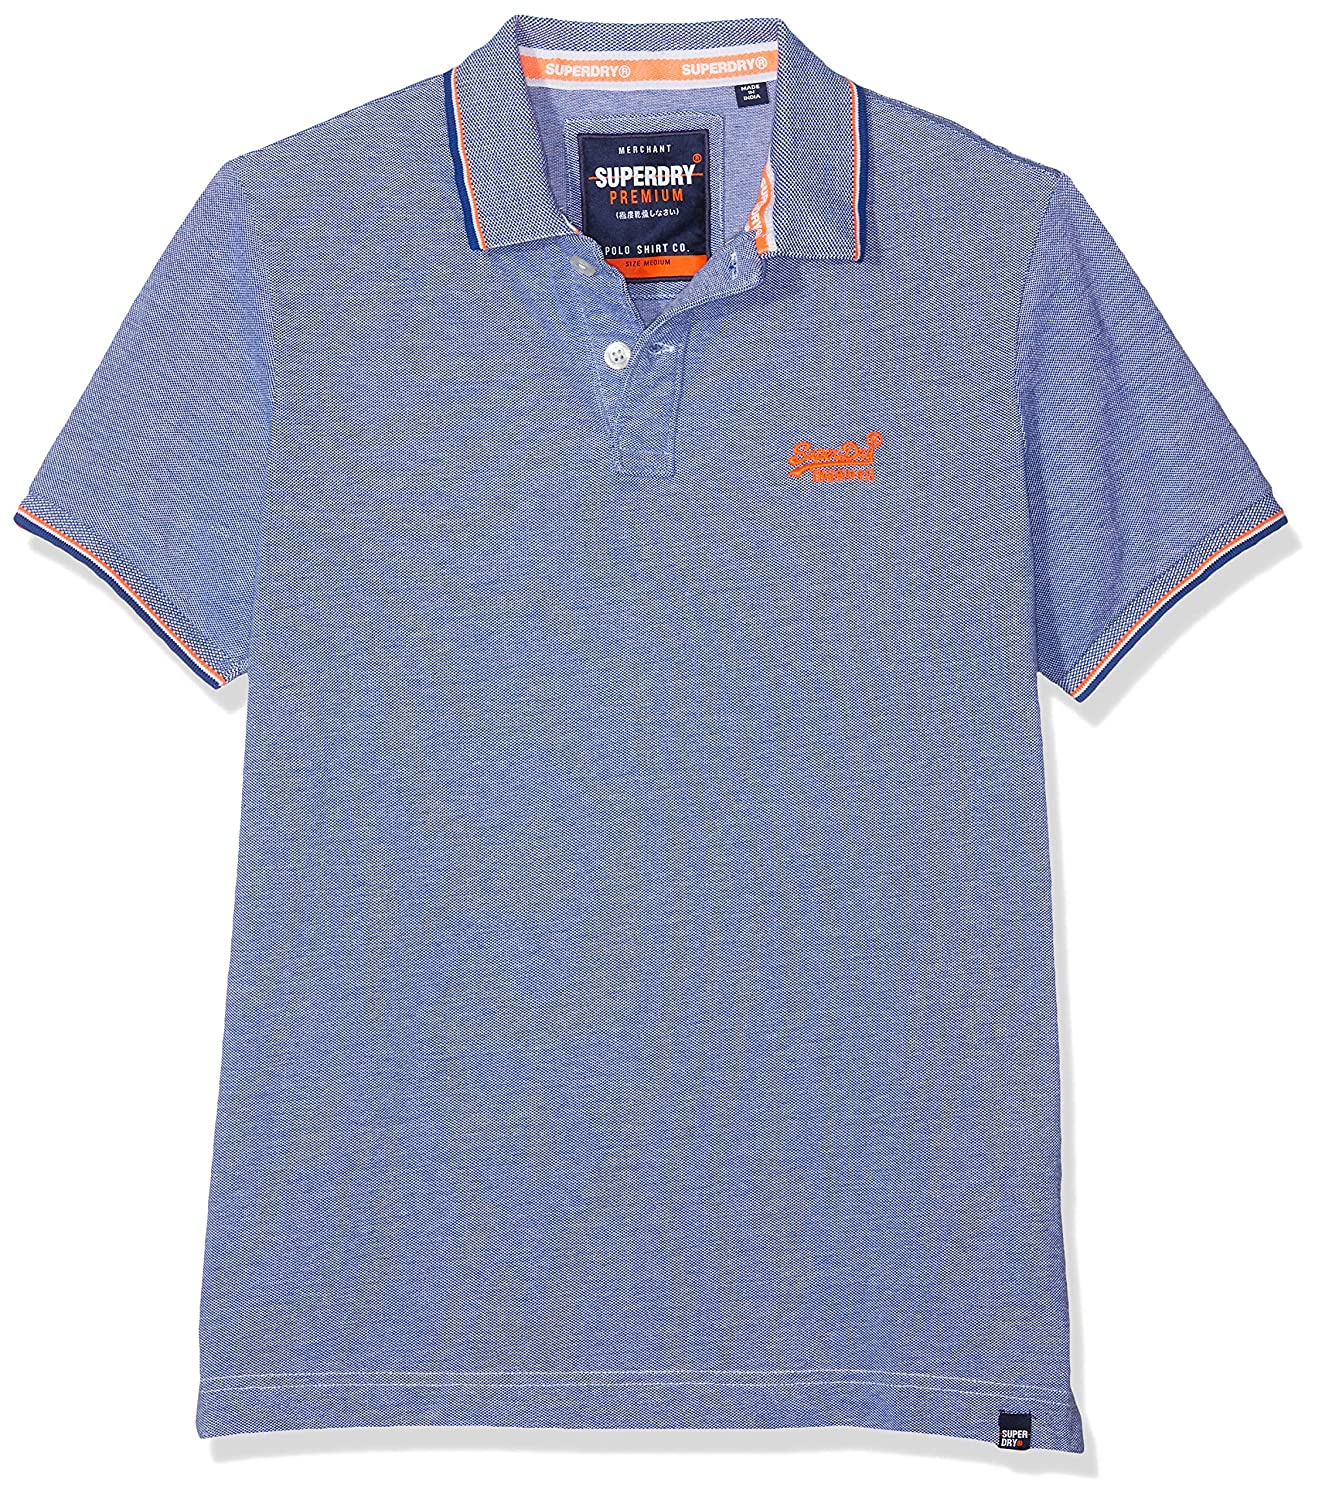 41da4b056b3a Superdry Men's Classic Poolside Pique Polo Shirt: Amazon.co.uk: Clothing